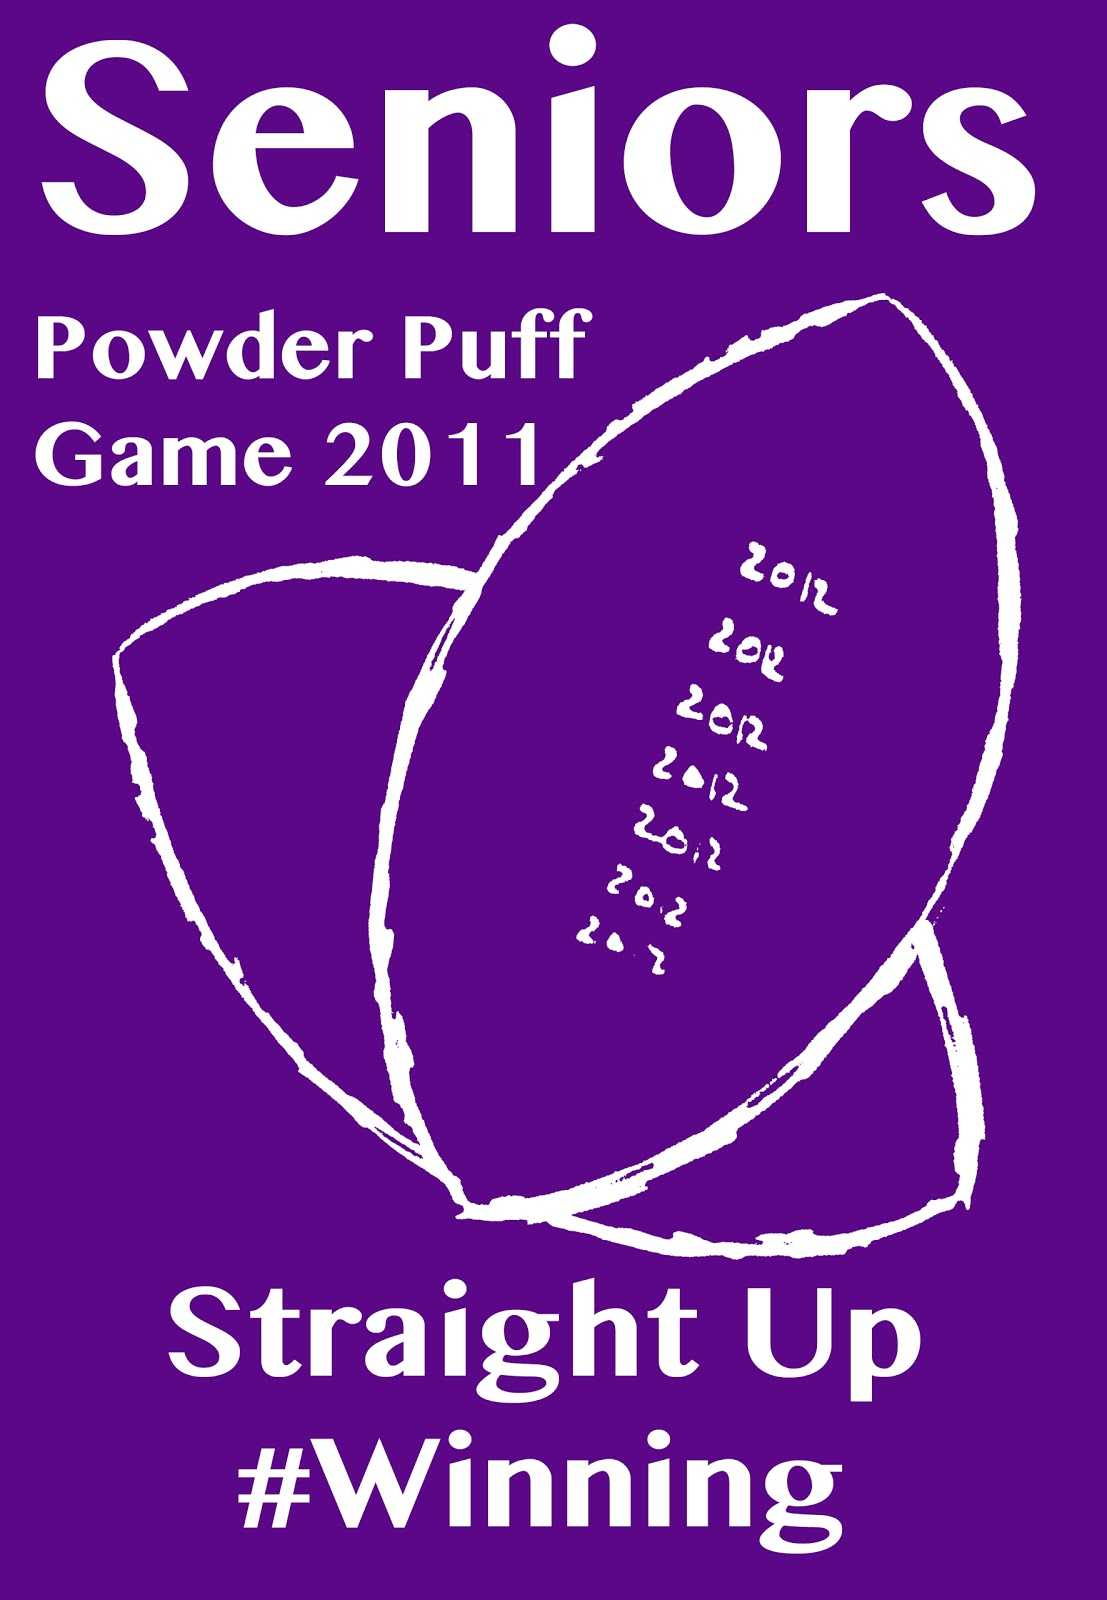 powderpuff sayings